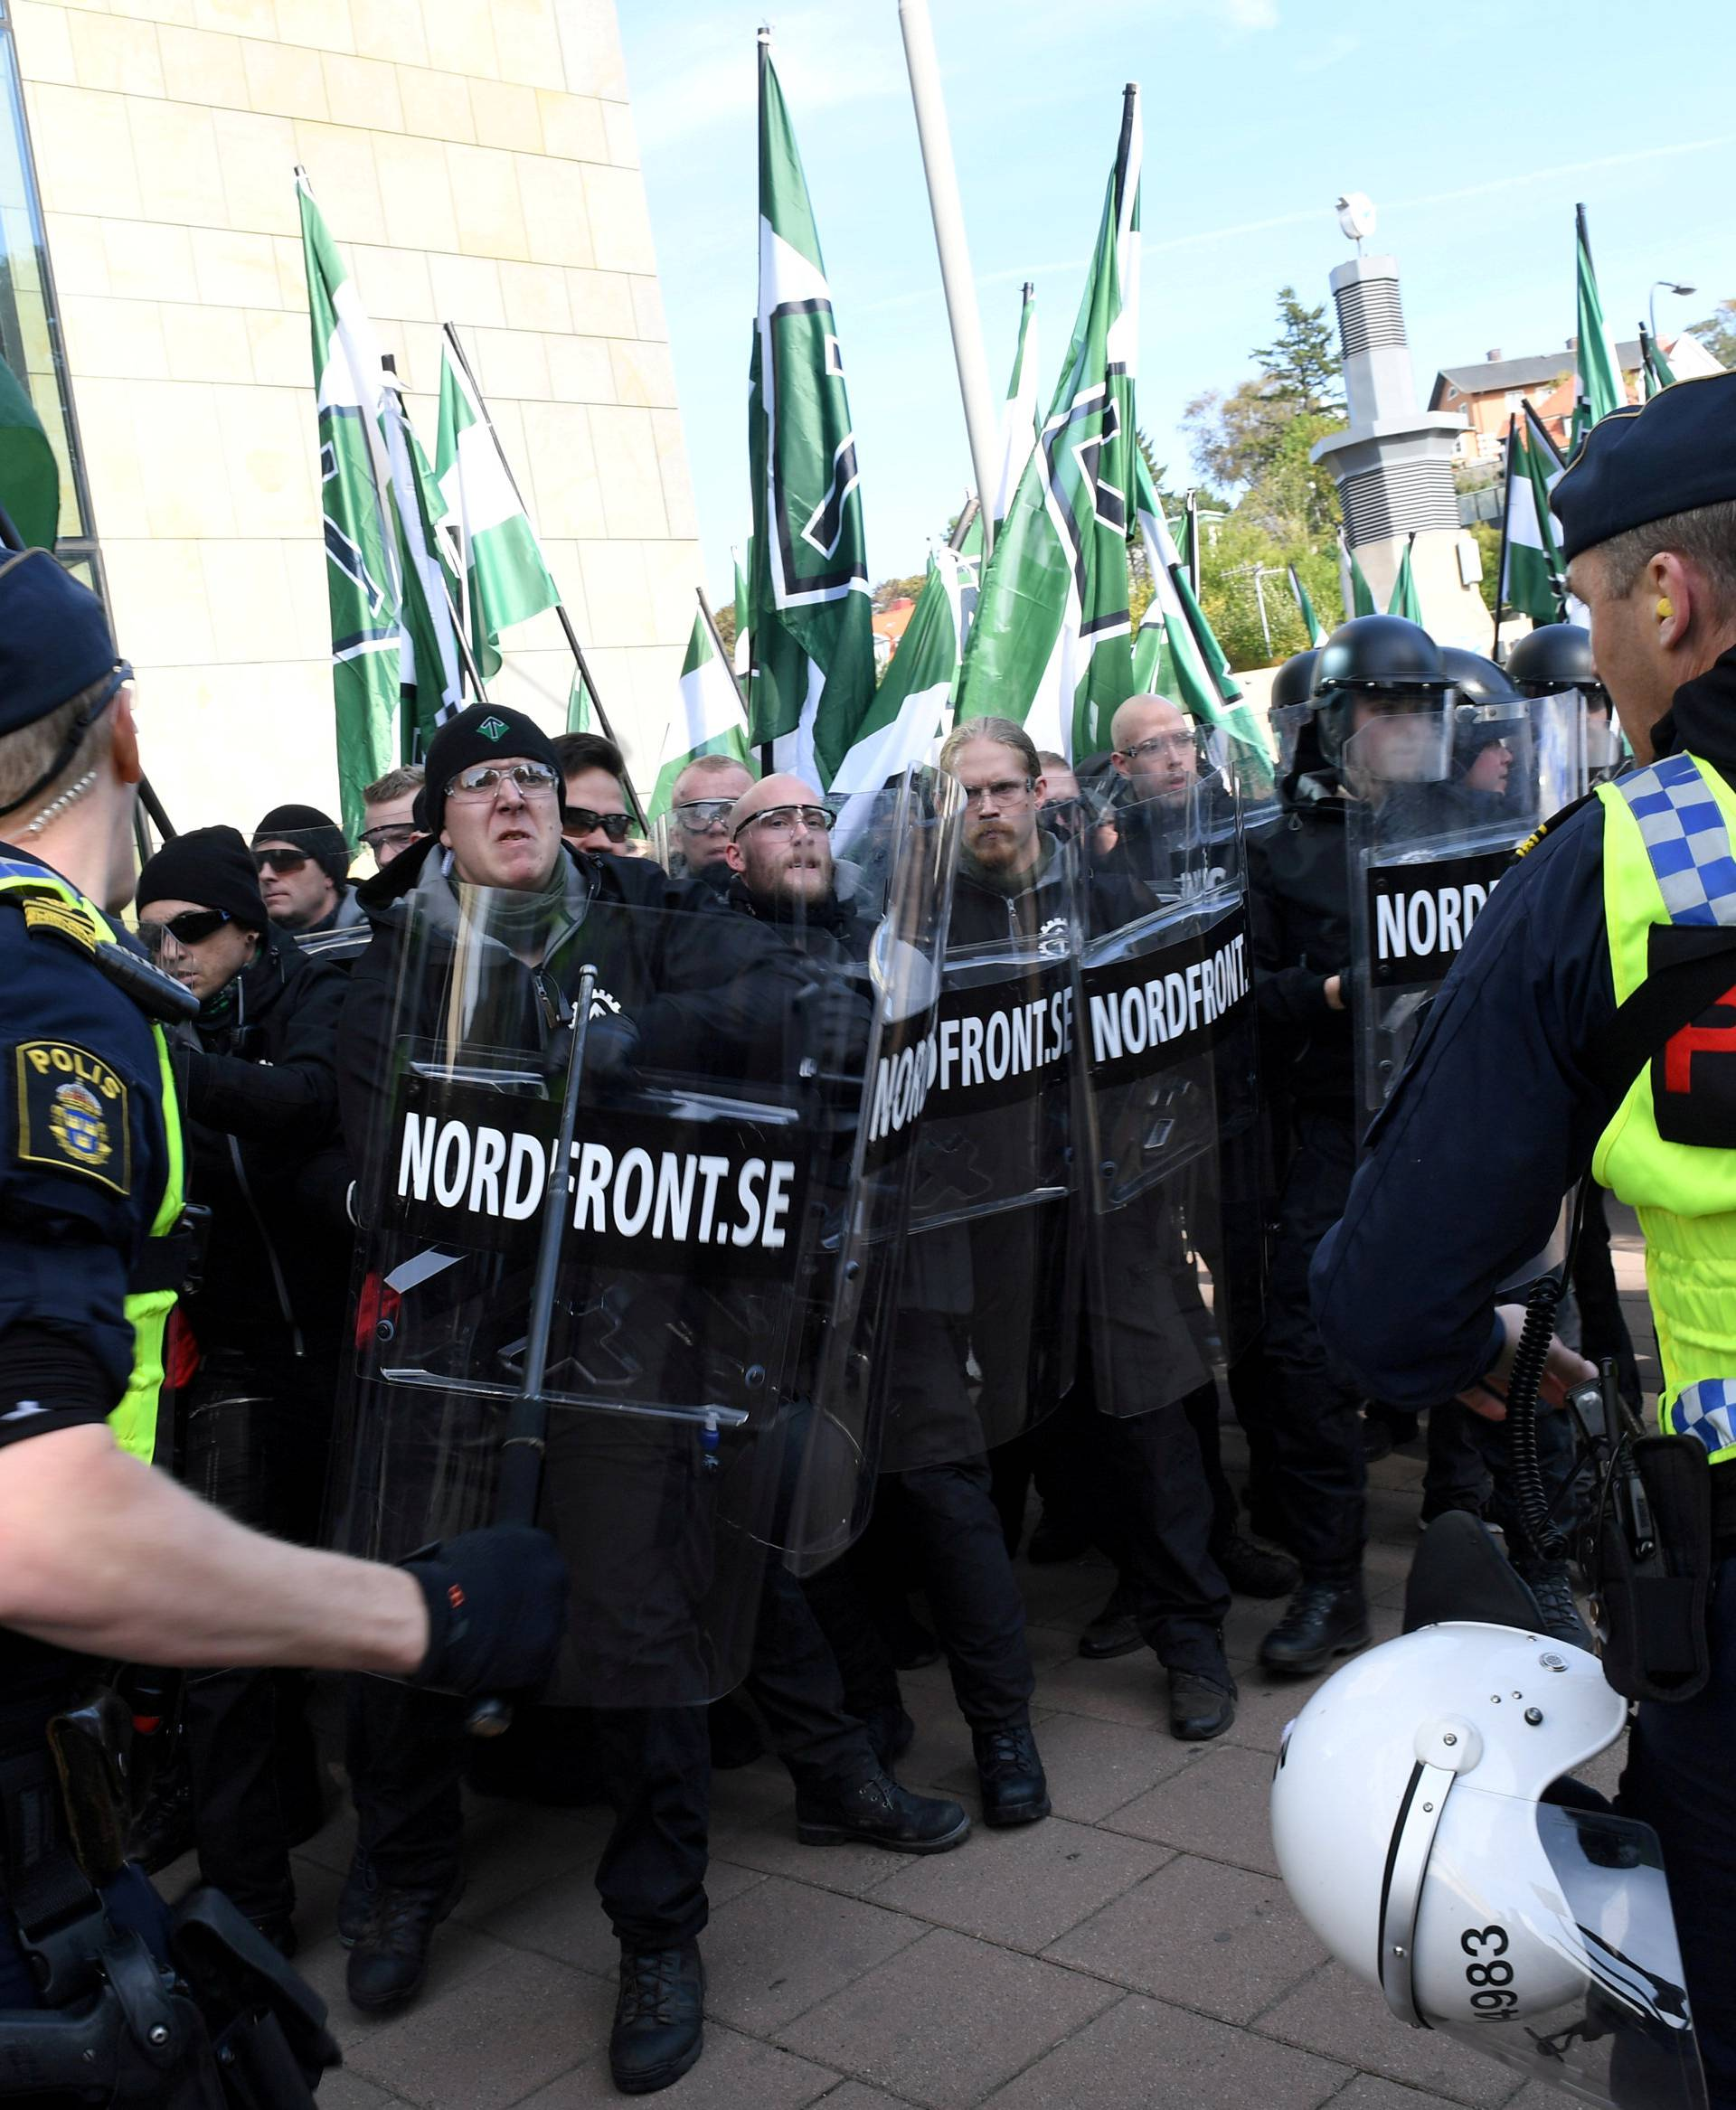 Police officers stop NMR demonstrators from trying to walk along a forbidden street during the Nordic Resistance Movement march in central Gothenburg